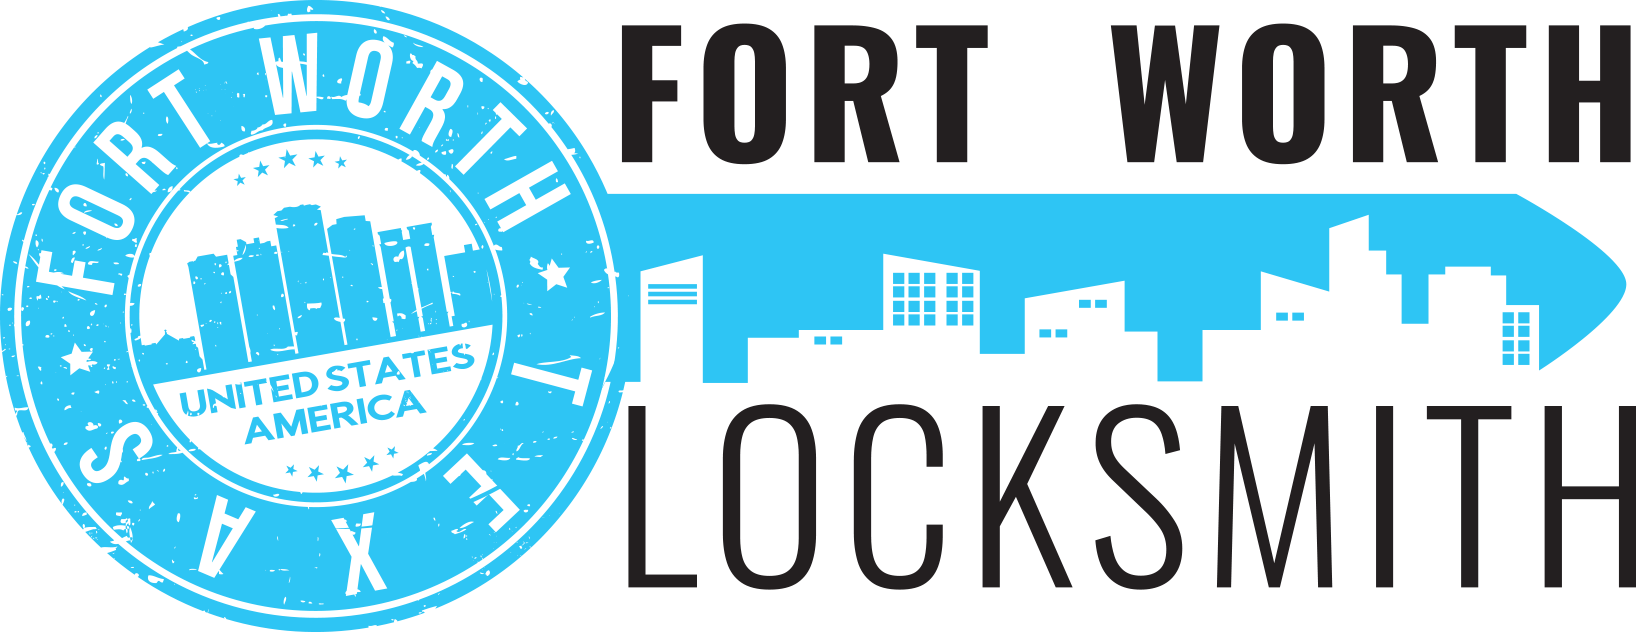 Locksmith In Fort worth TX